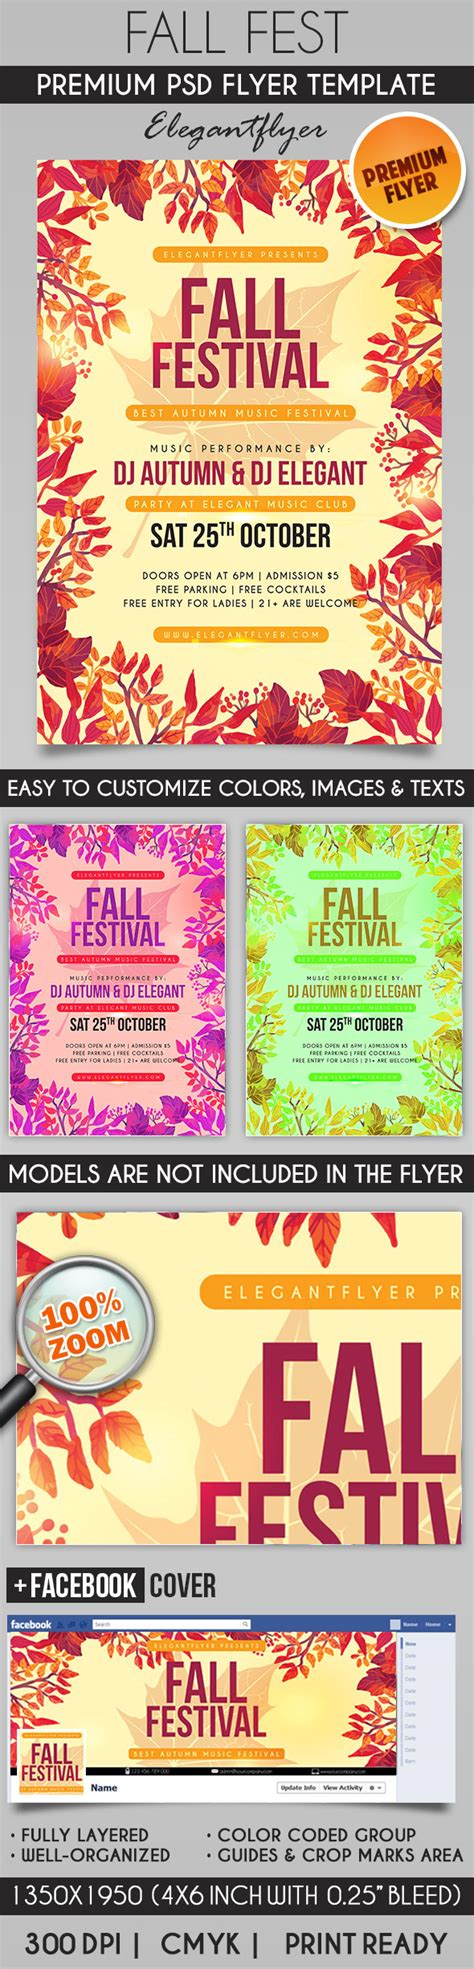 fall festival flyer template fall festival cover psd template flyer flyershitter